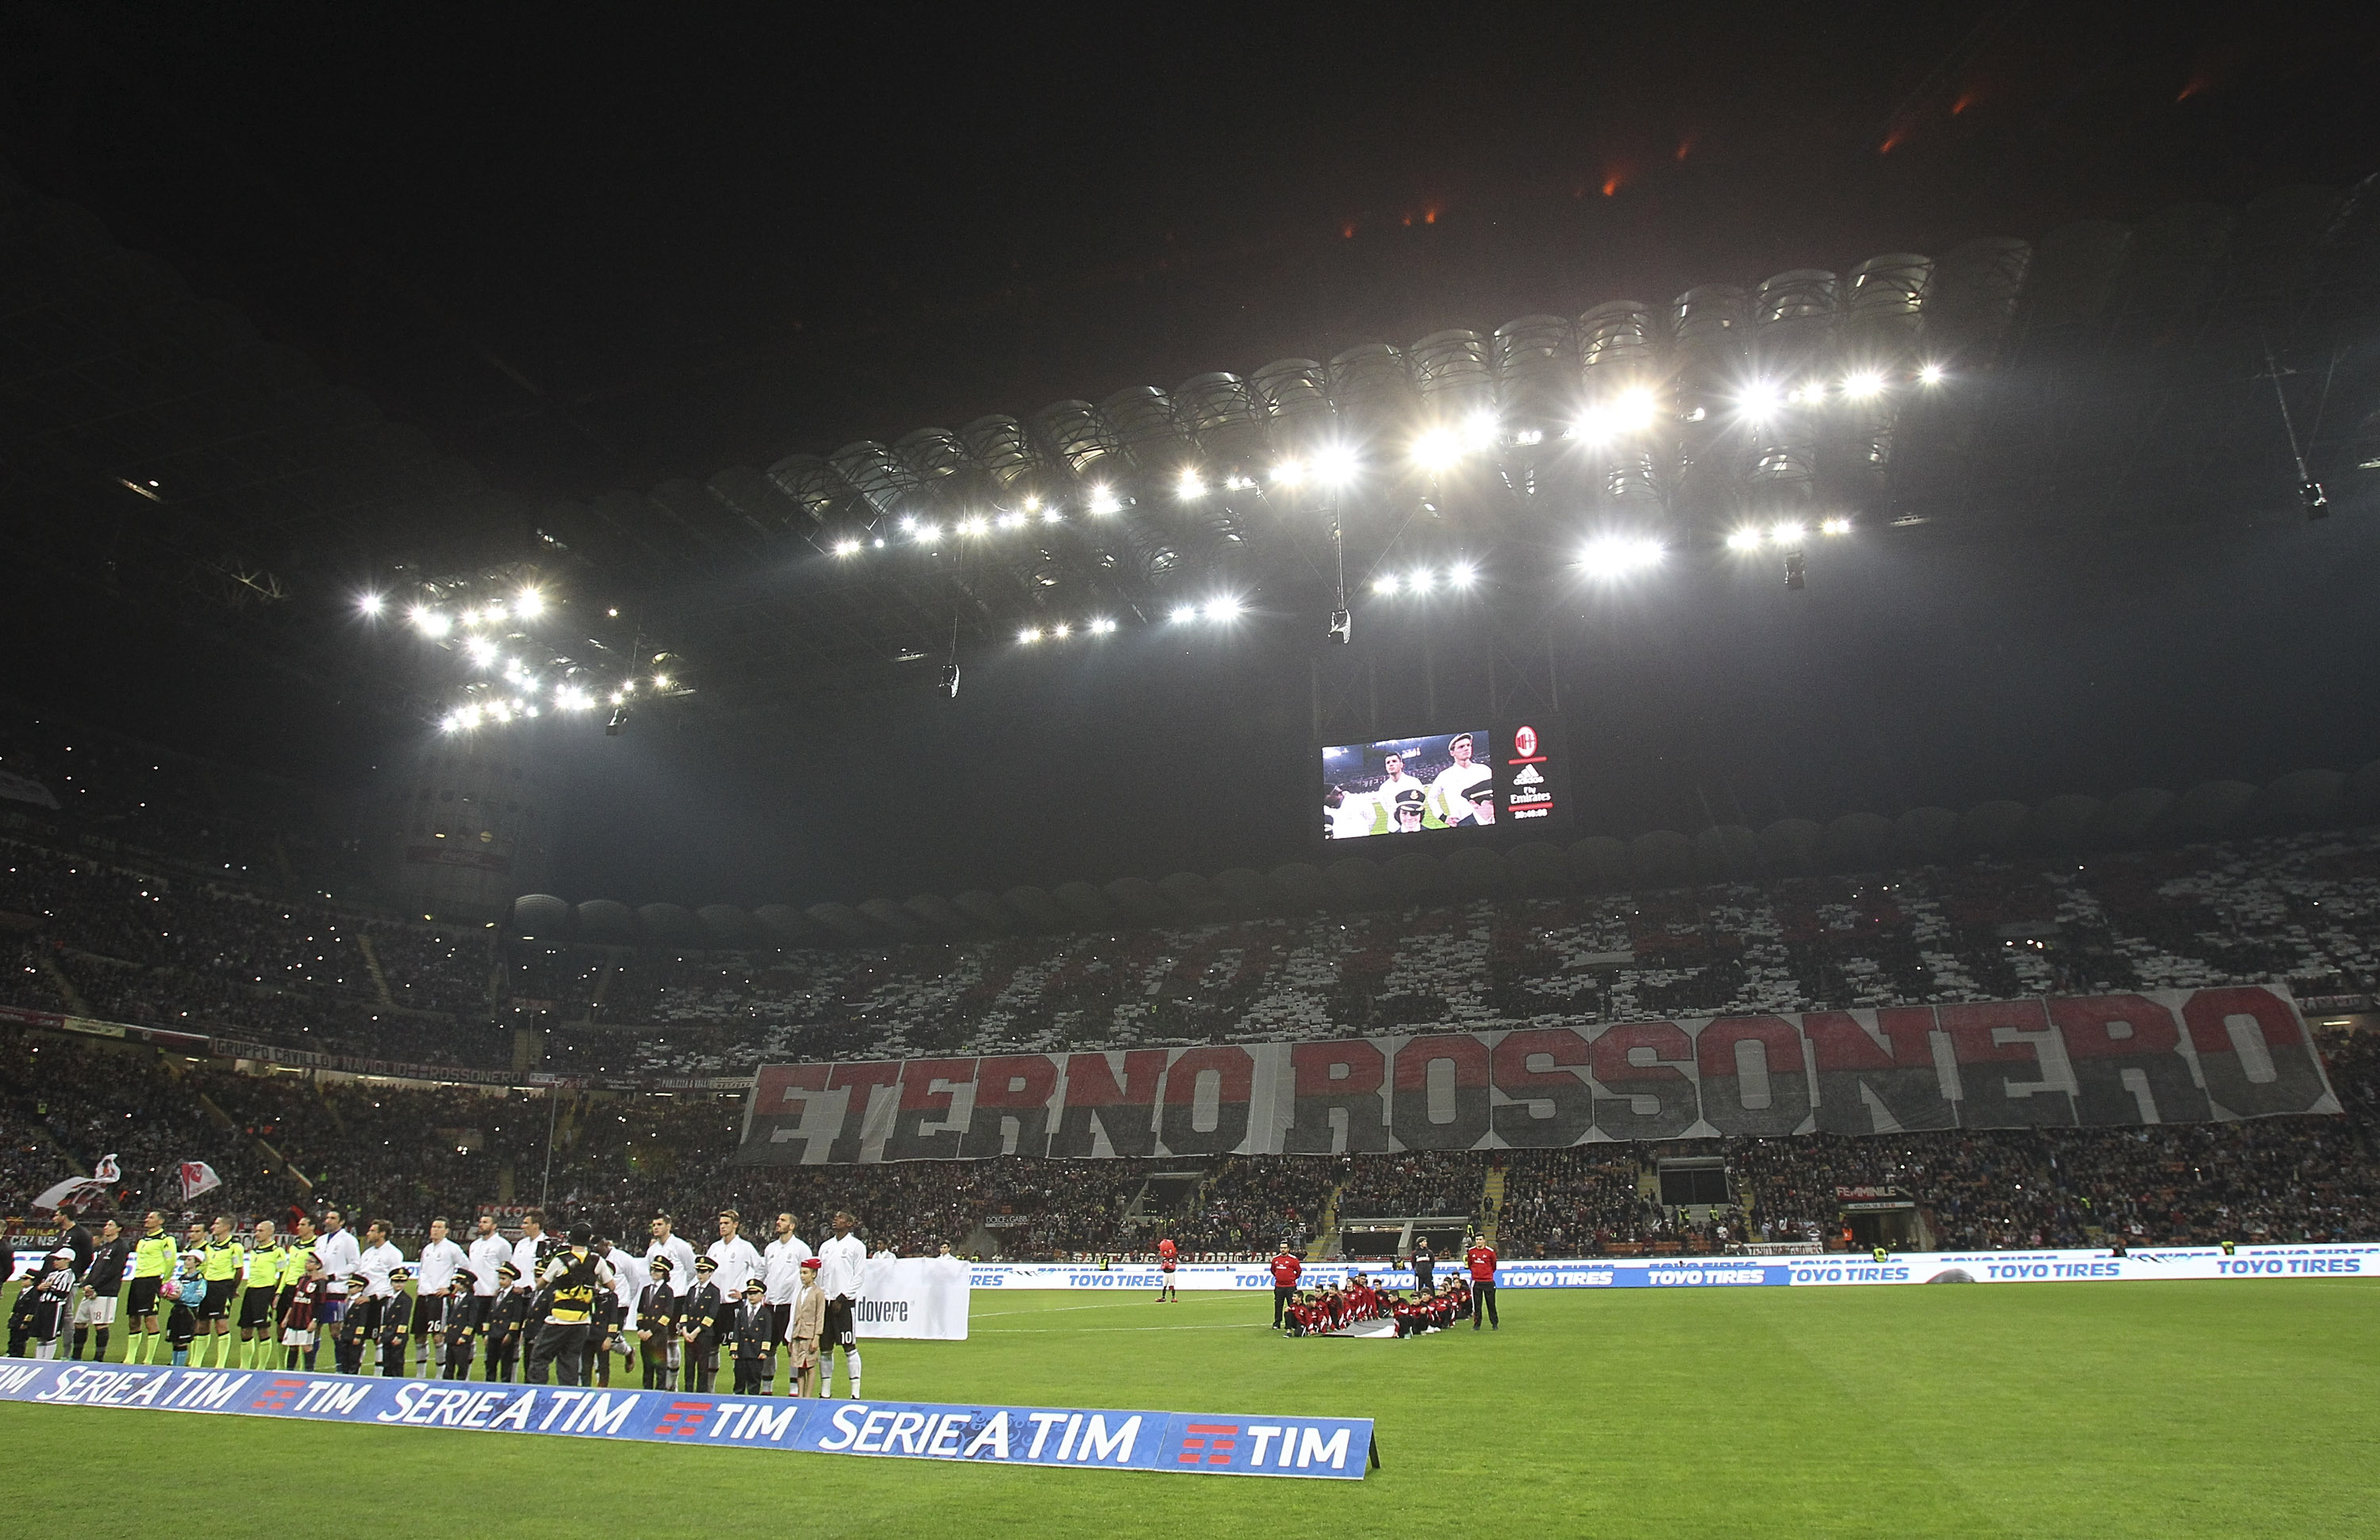 MILAN, ITALY - APRIL 09: AC Milan fans display a giant banner in memory of Cesare Maldini before the Serie A match between AC Milan and Juventus FC at Stadio Giuseppe Meazza on April 9, 2016 in Milan, Italy. (Photo by Marco Luzzani/Getty Images)